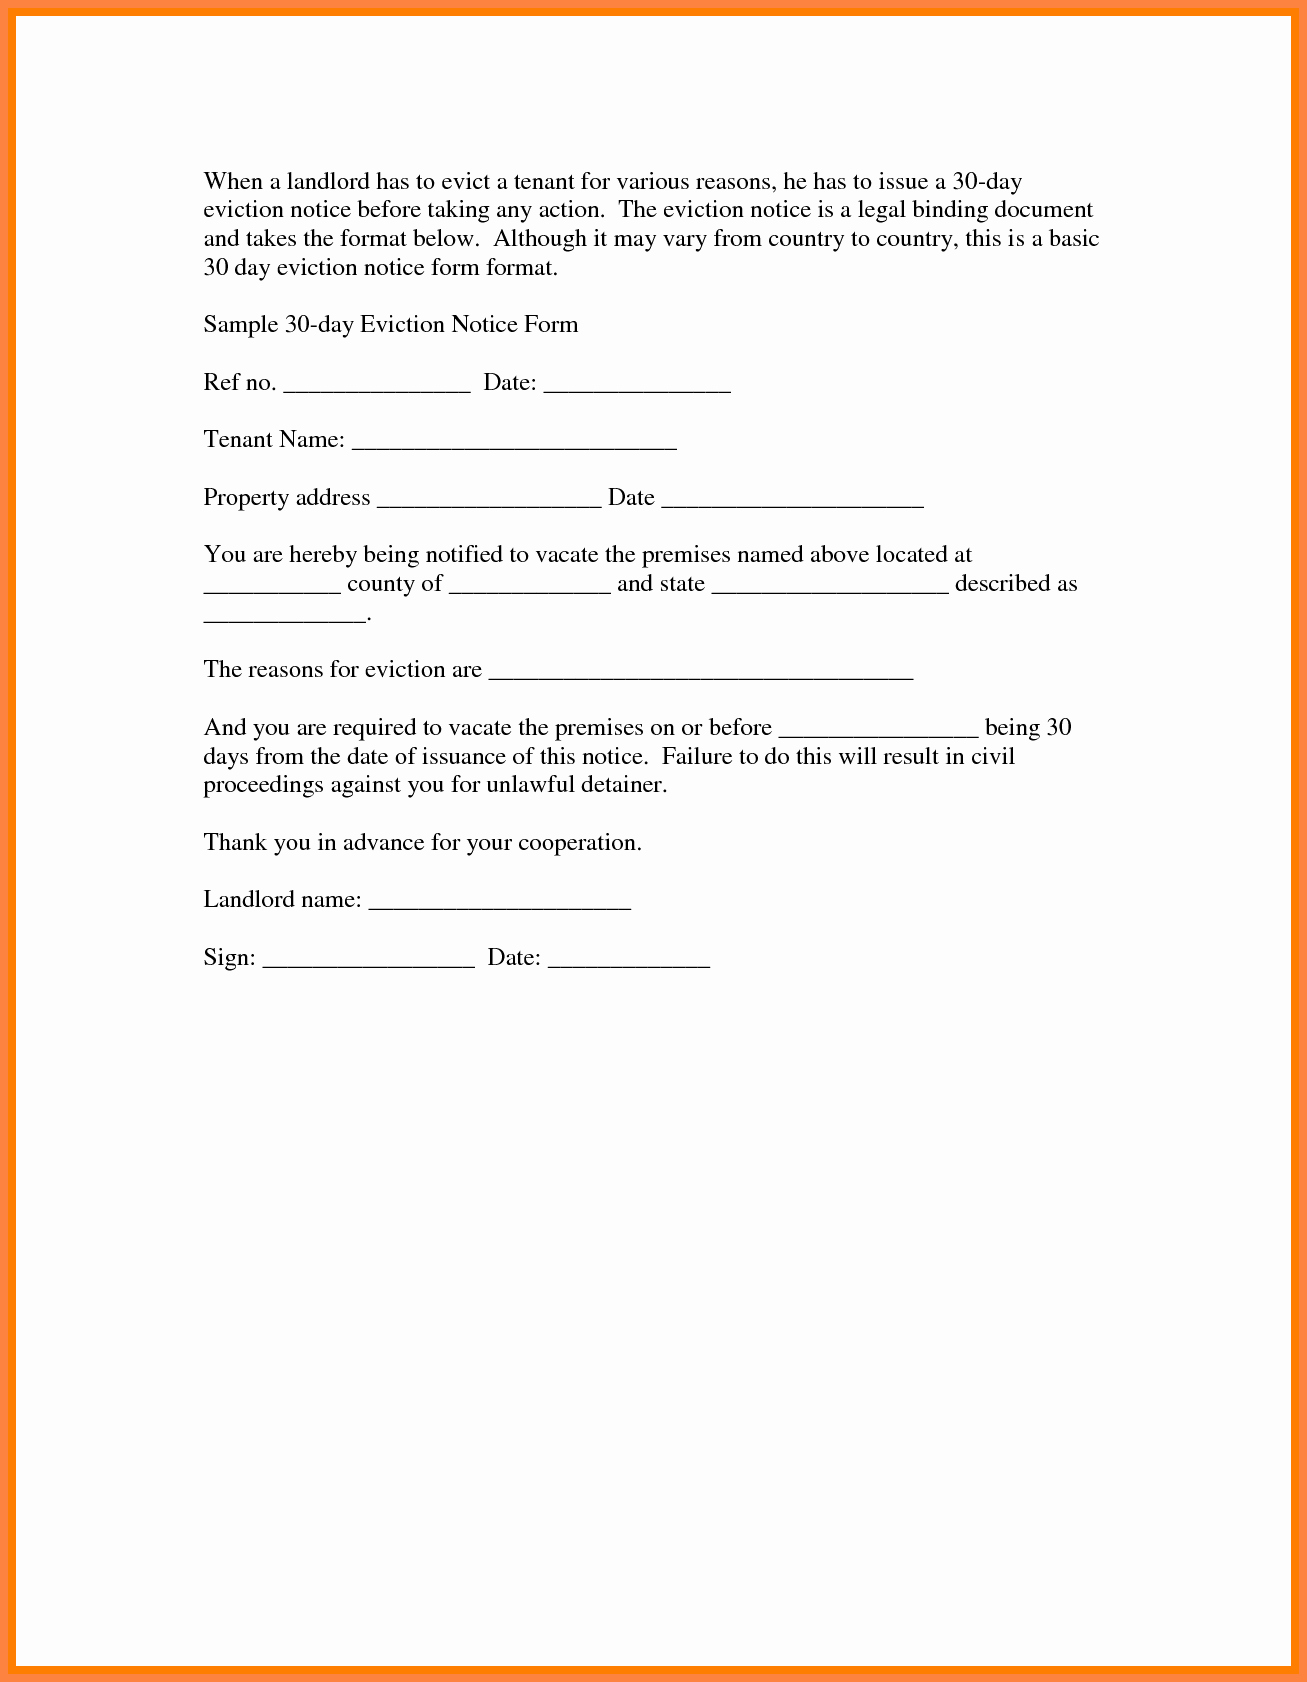 30 Day Eviction Notice form Inspirational 6 30 Day Eviction Notice Pdf